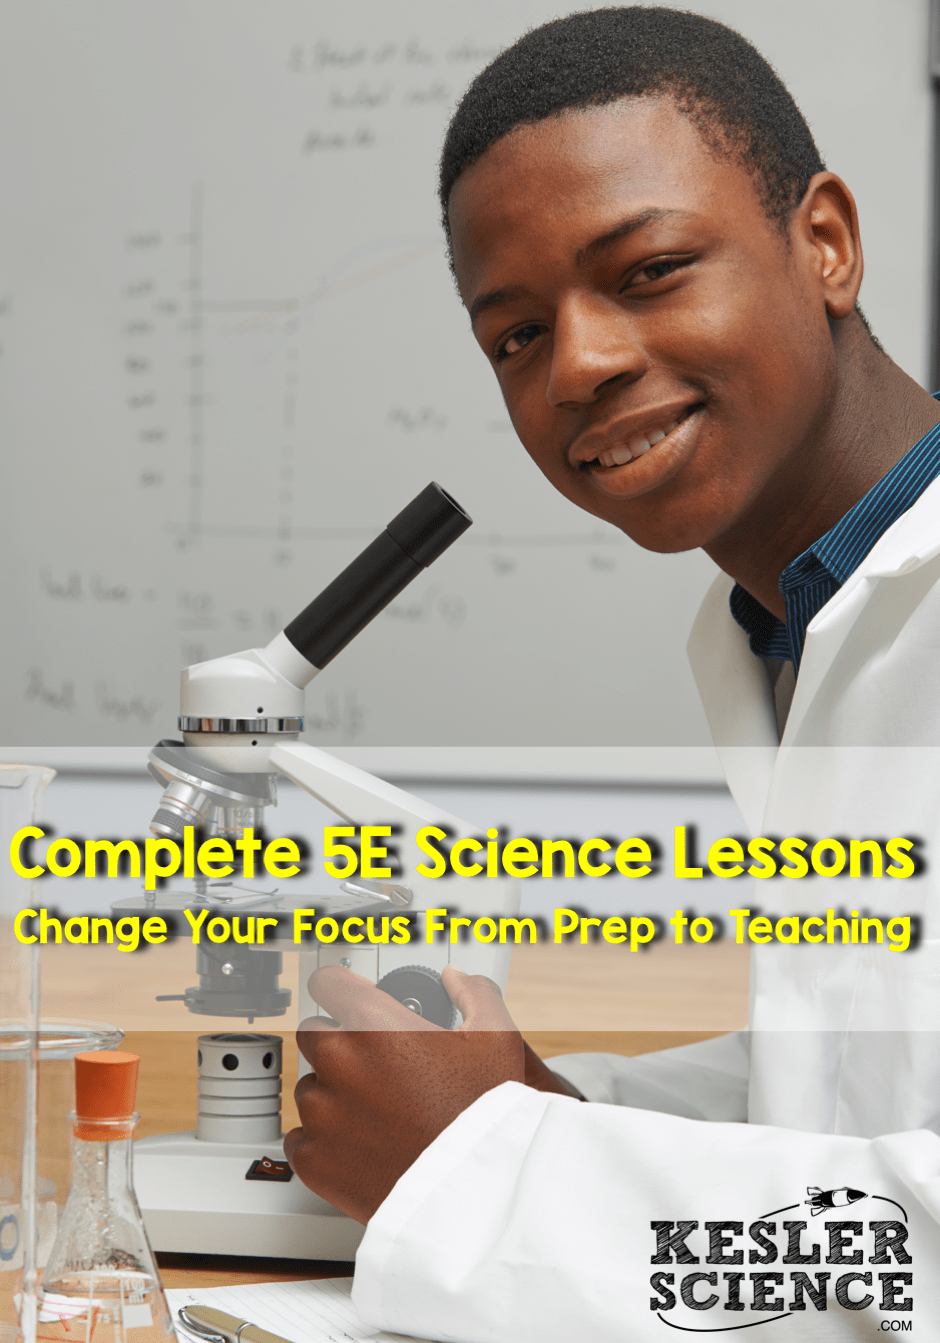 Complete 5E Science Lessons - All the work is done for you!